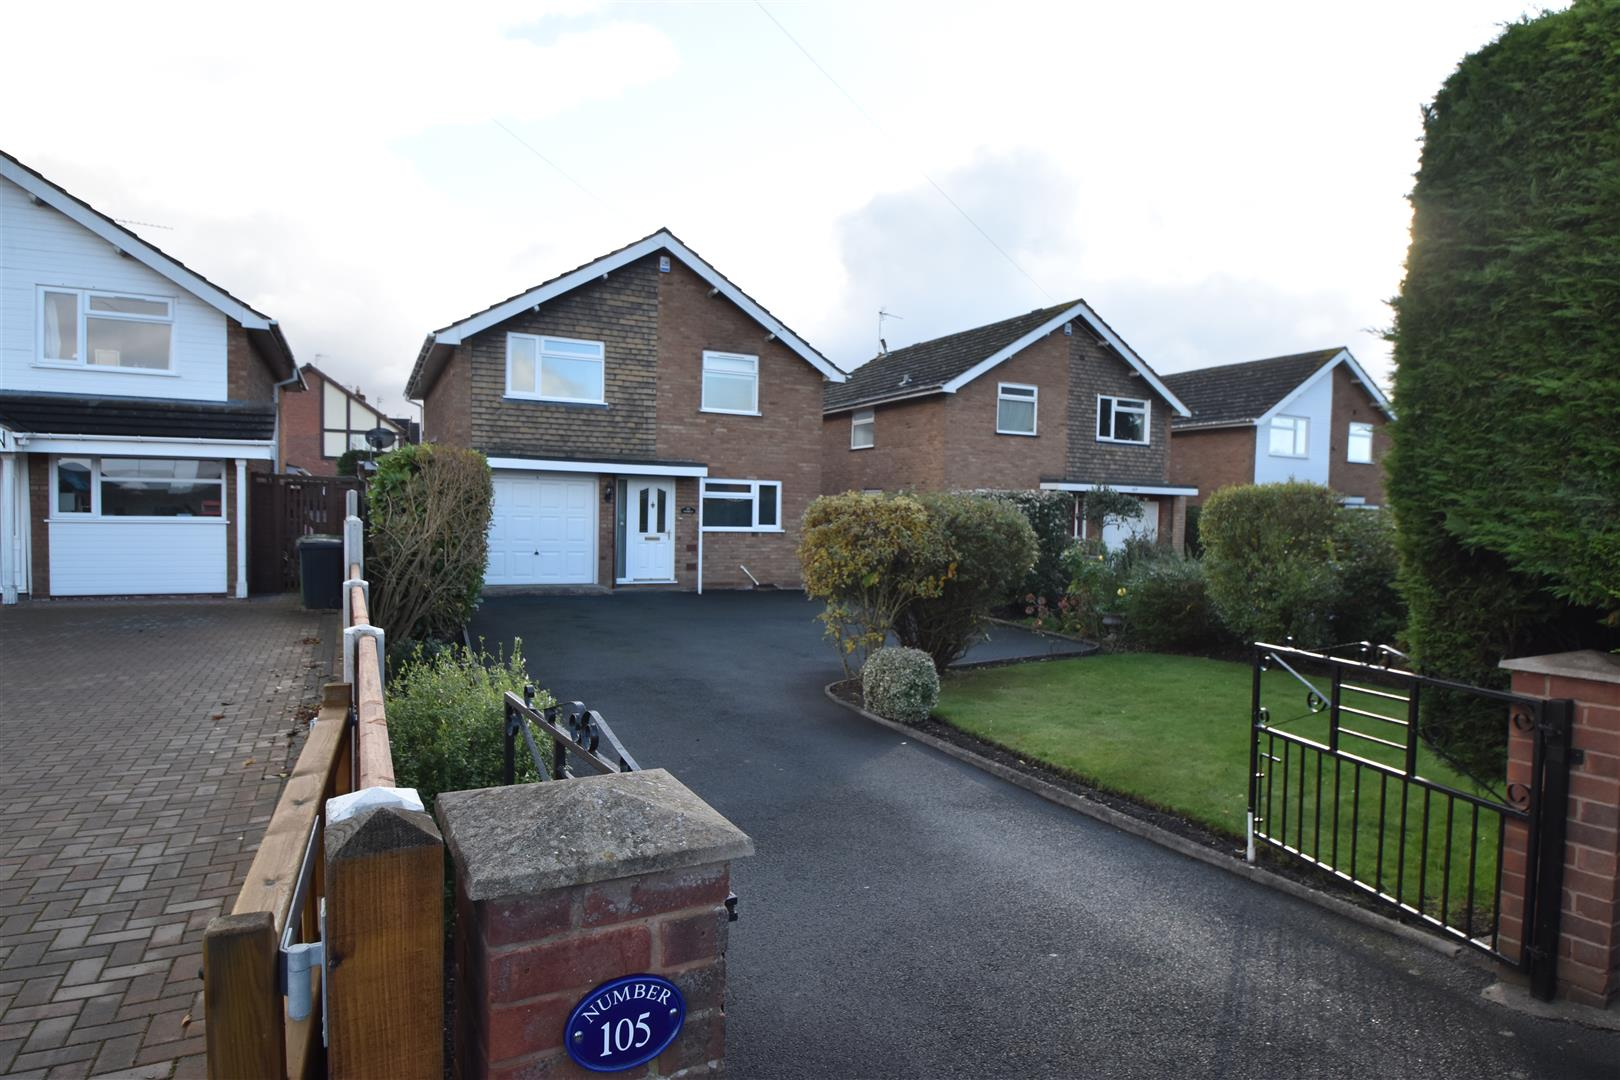 3 Bedrooms Detached House for sale in Droitwich Road, Fernhill Heath, Worcester